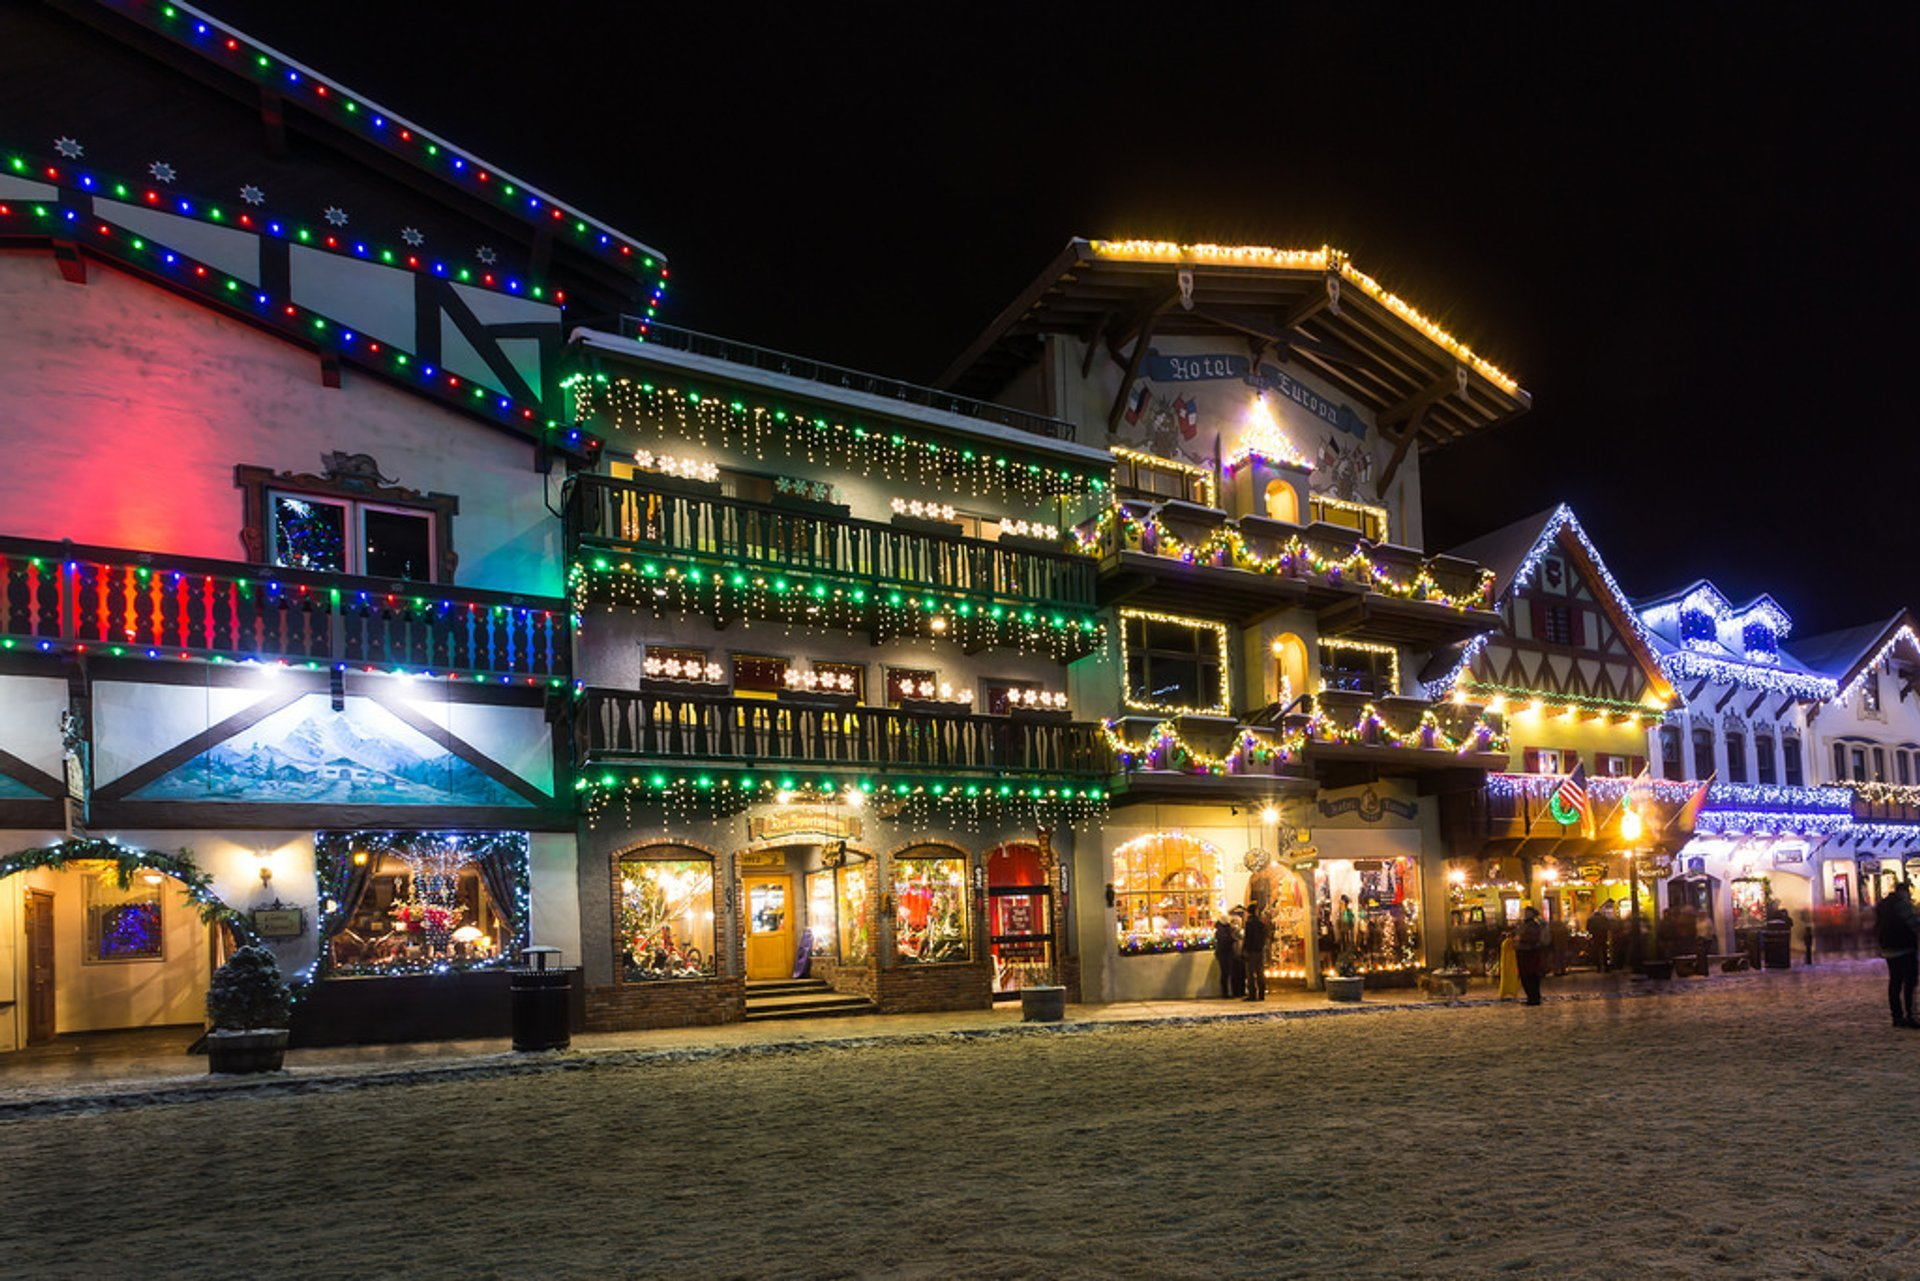 Best time to see Leavenworth Christmas Lighting Festival in Seattle 2019